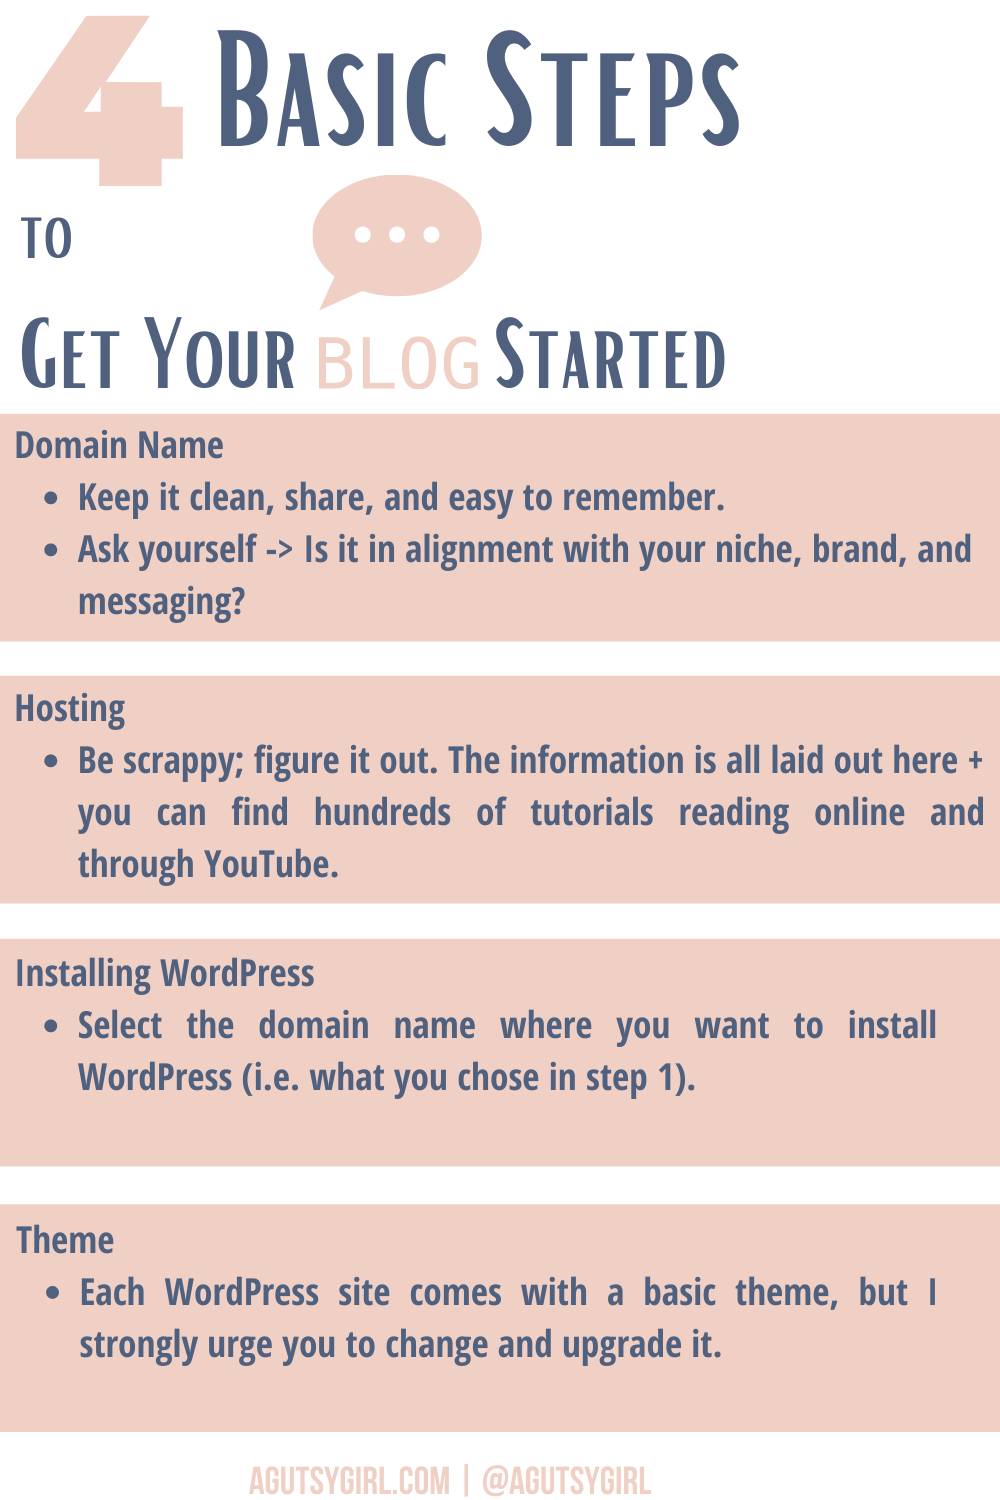 How to Start a Blog 4 basic steps to get started blogging today agutsygirl.com #blogging #howtostartablog #onlinebusiness